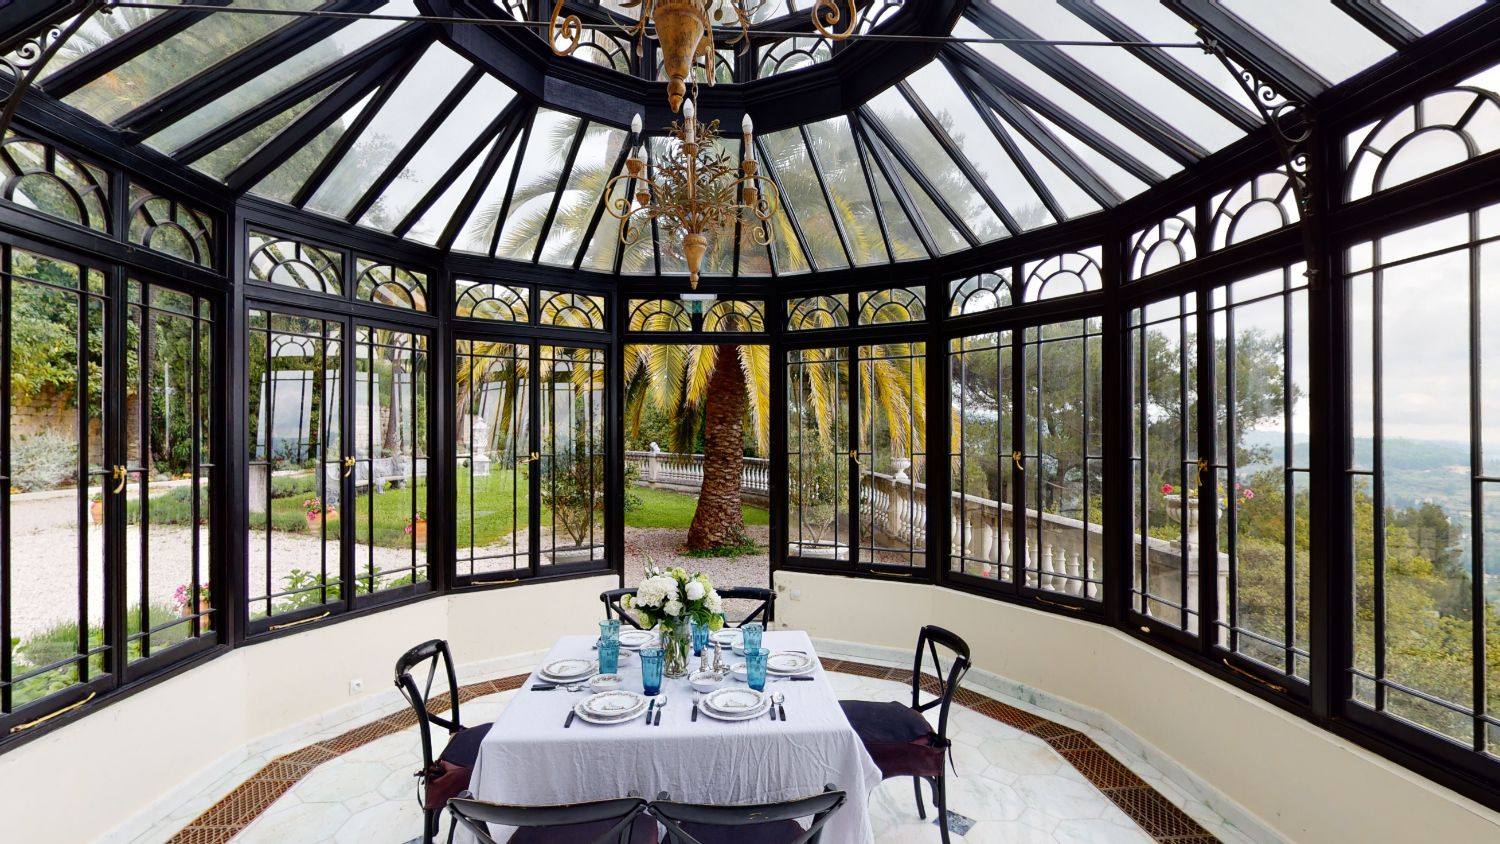 How To Choose The Perfect Venue For Your Luxury Retreat